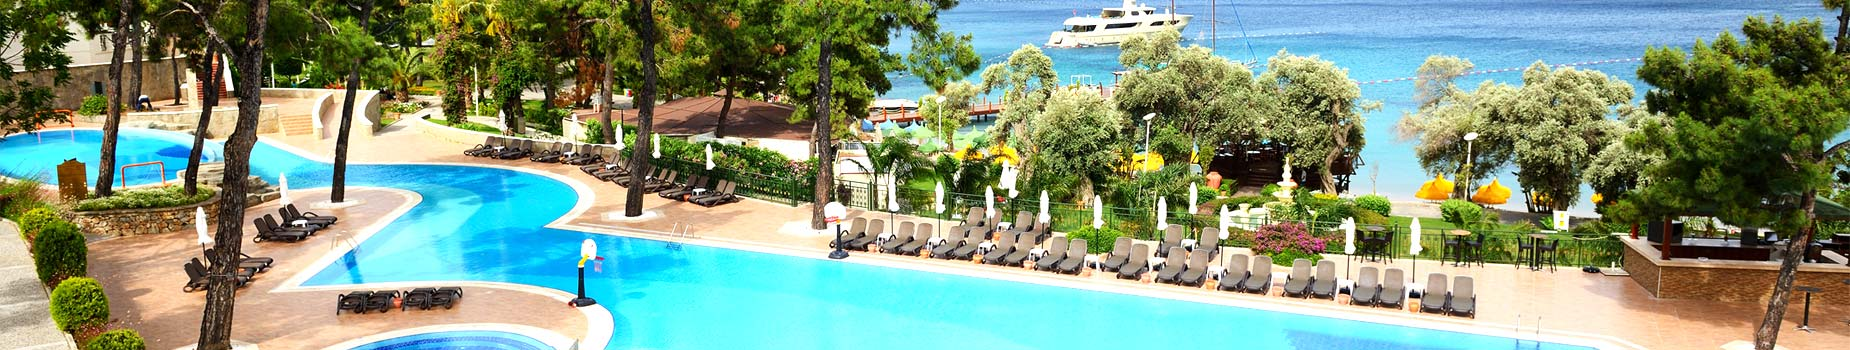 All inclusive naar Bodrum